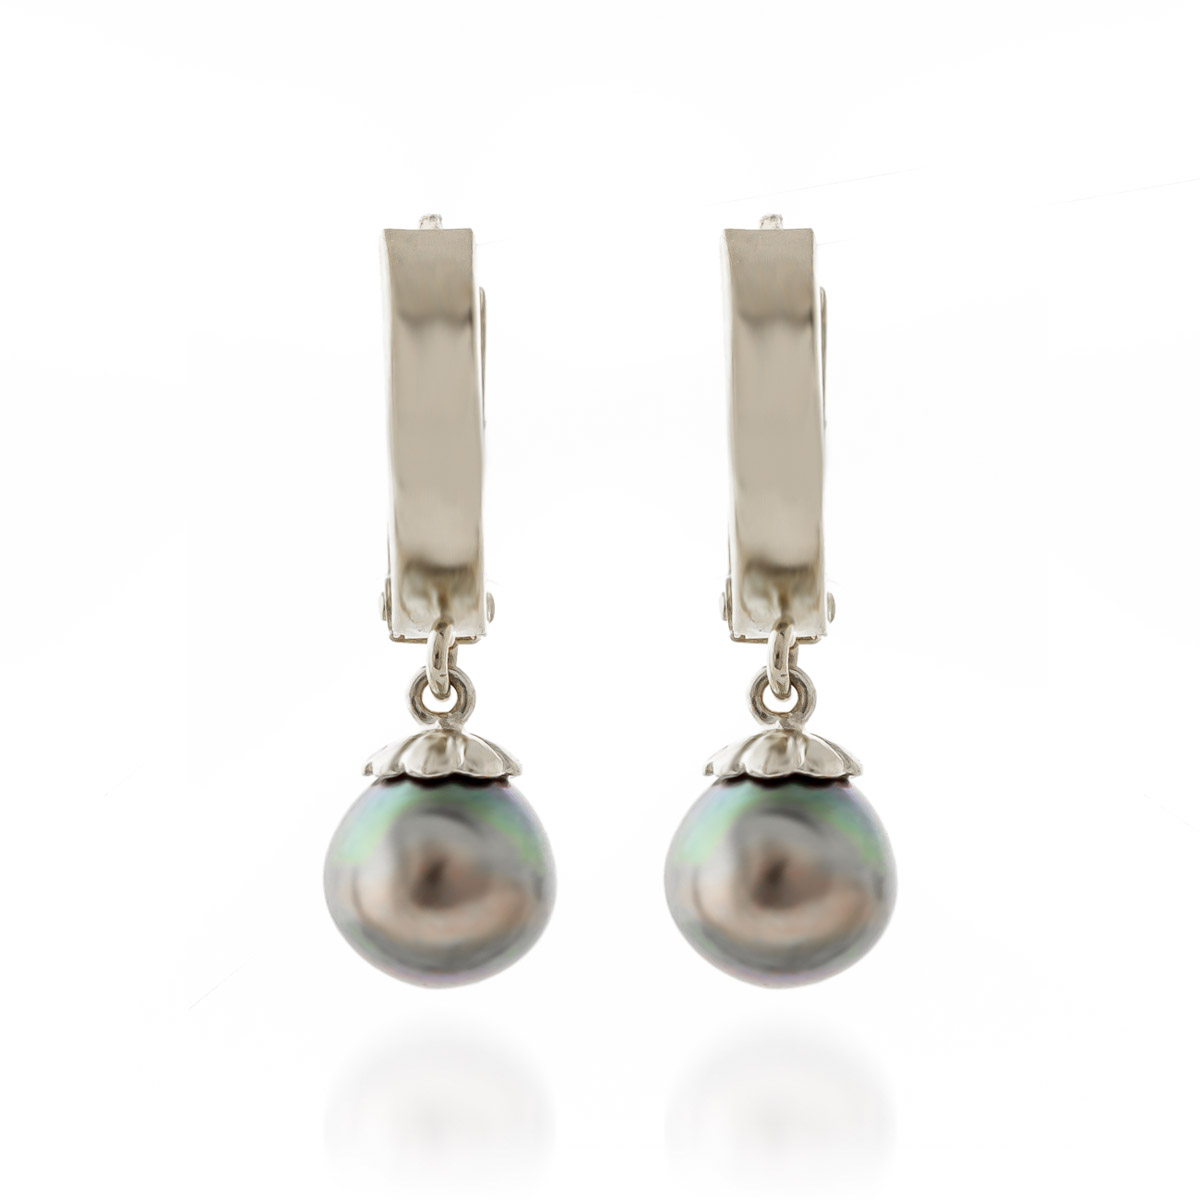 Black Pearl Drop Earrings 4 ctw in 9ct White Gold